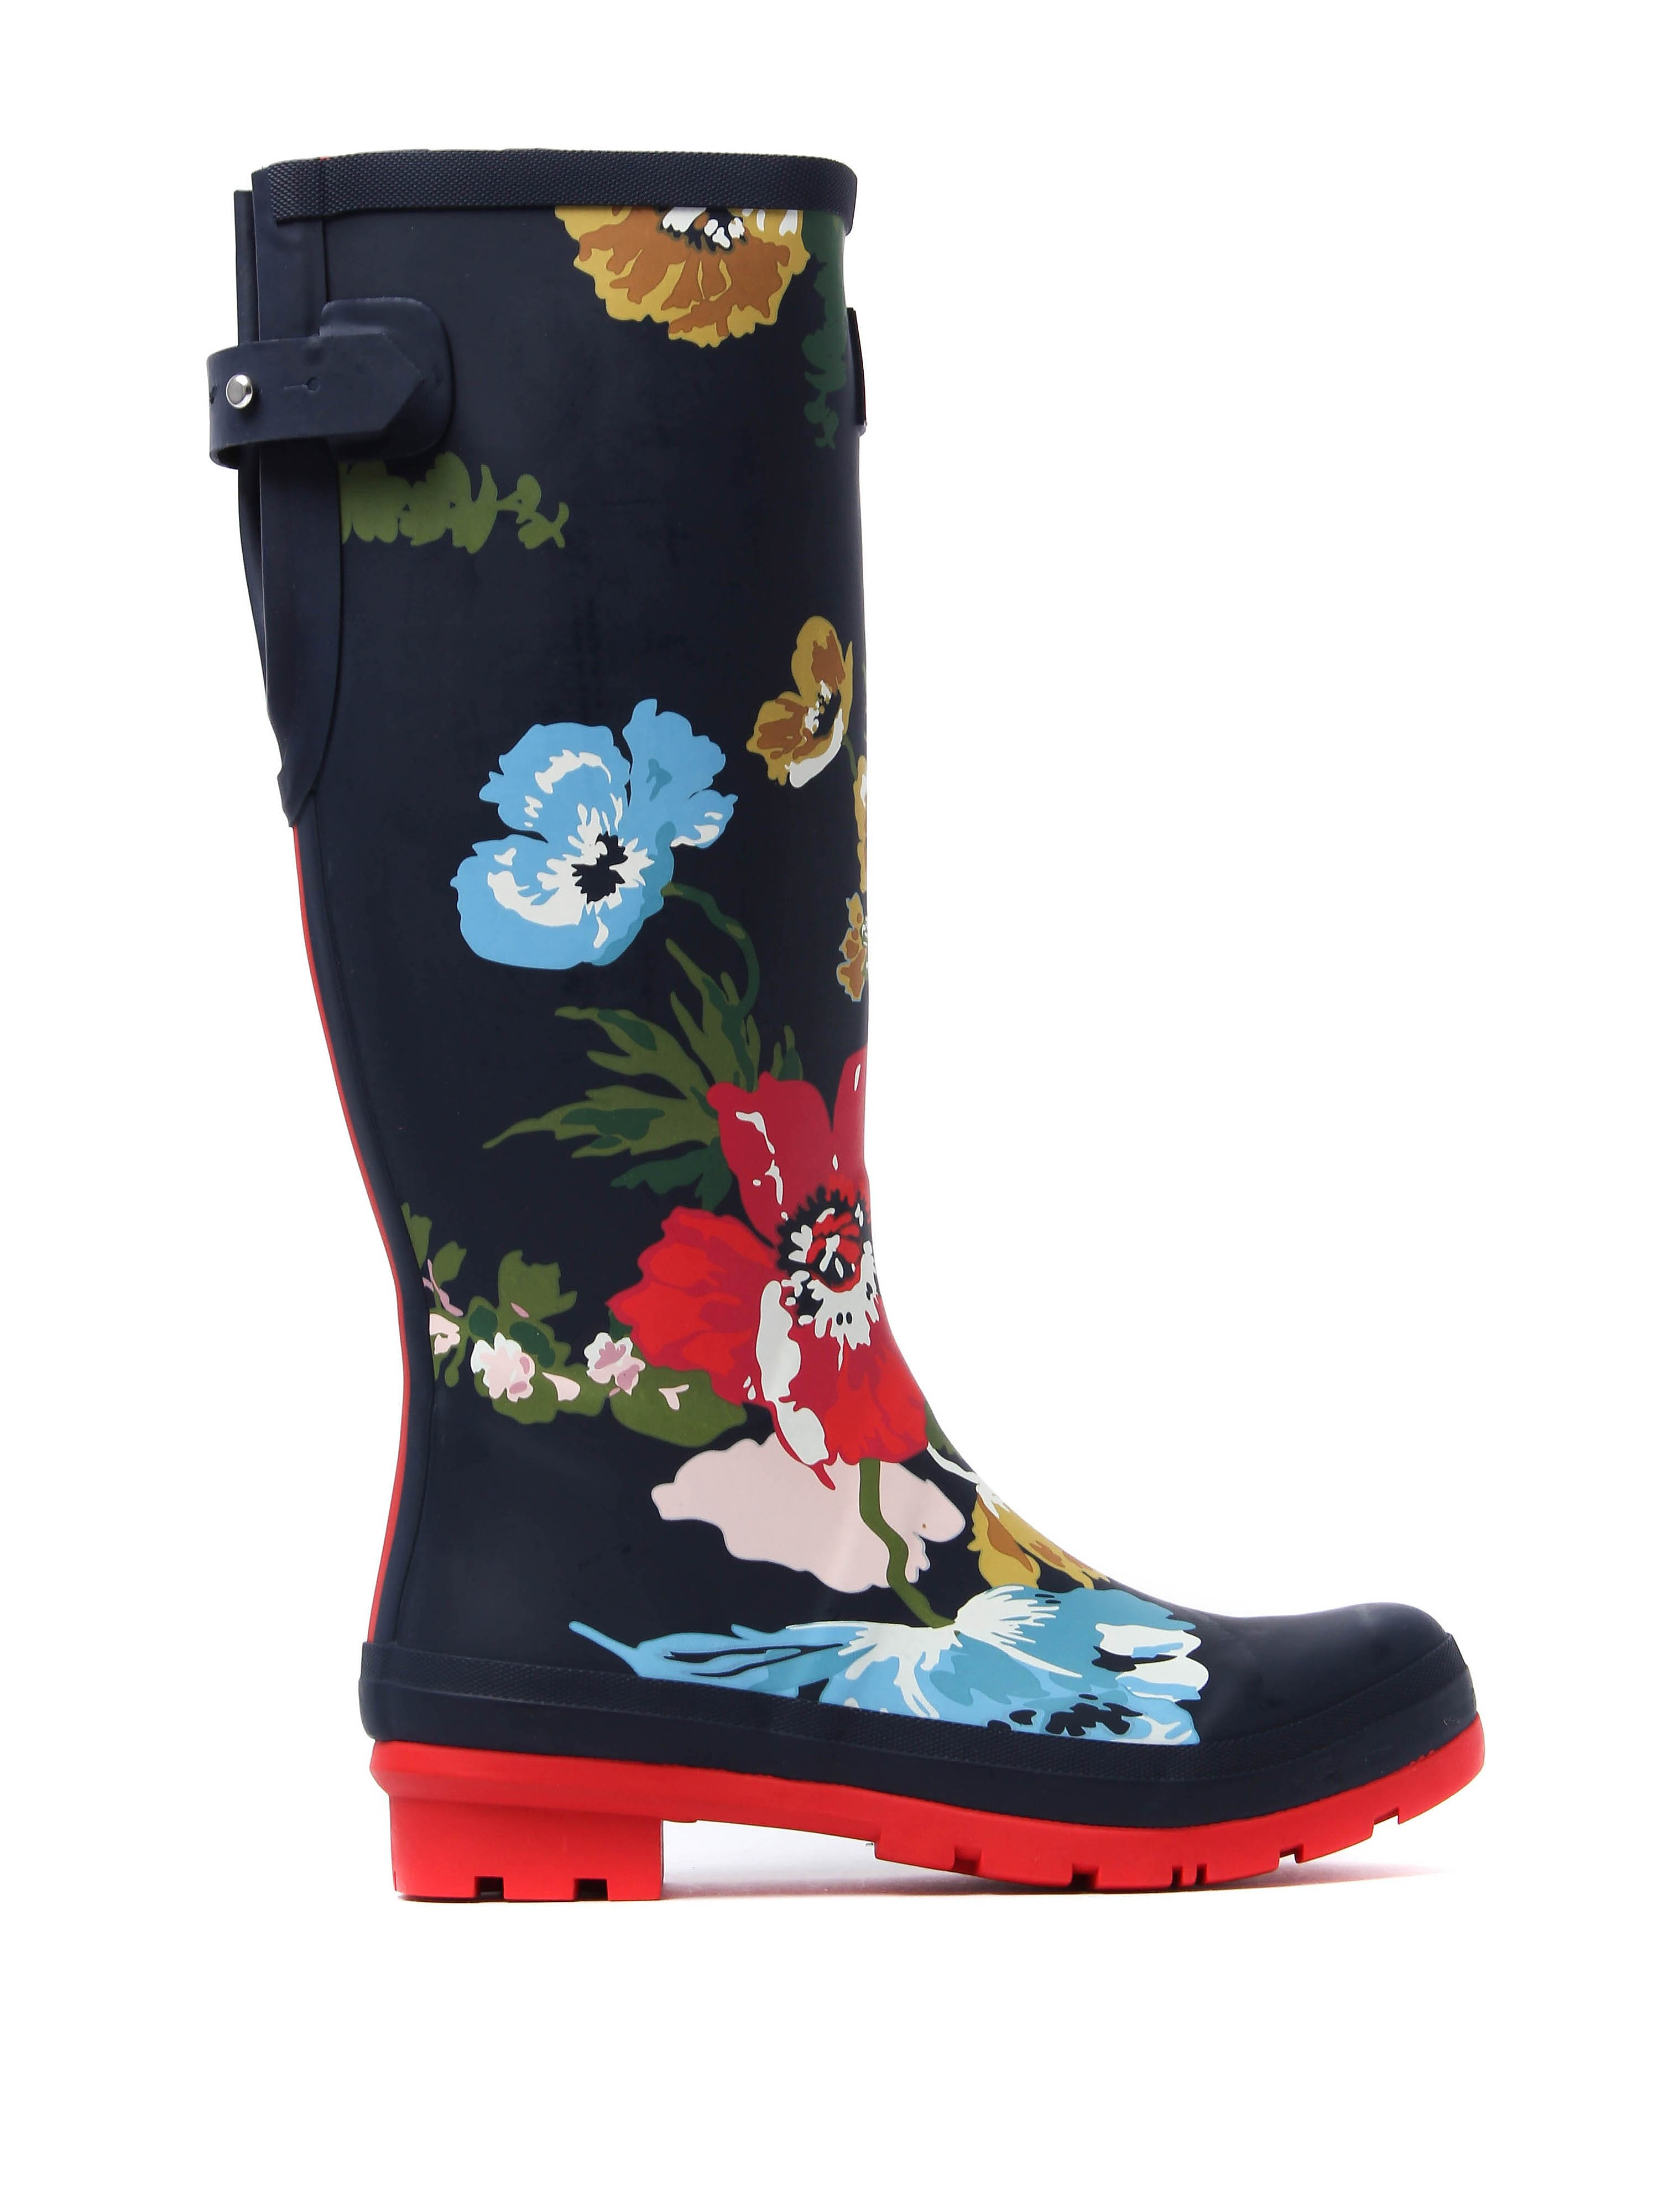 Joules Women's Adjusta Posy Rubber Wellington Boots - French Navy